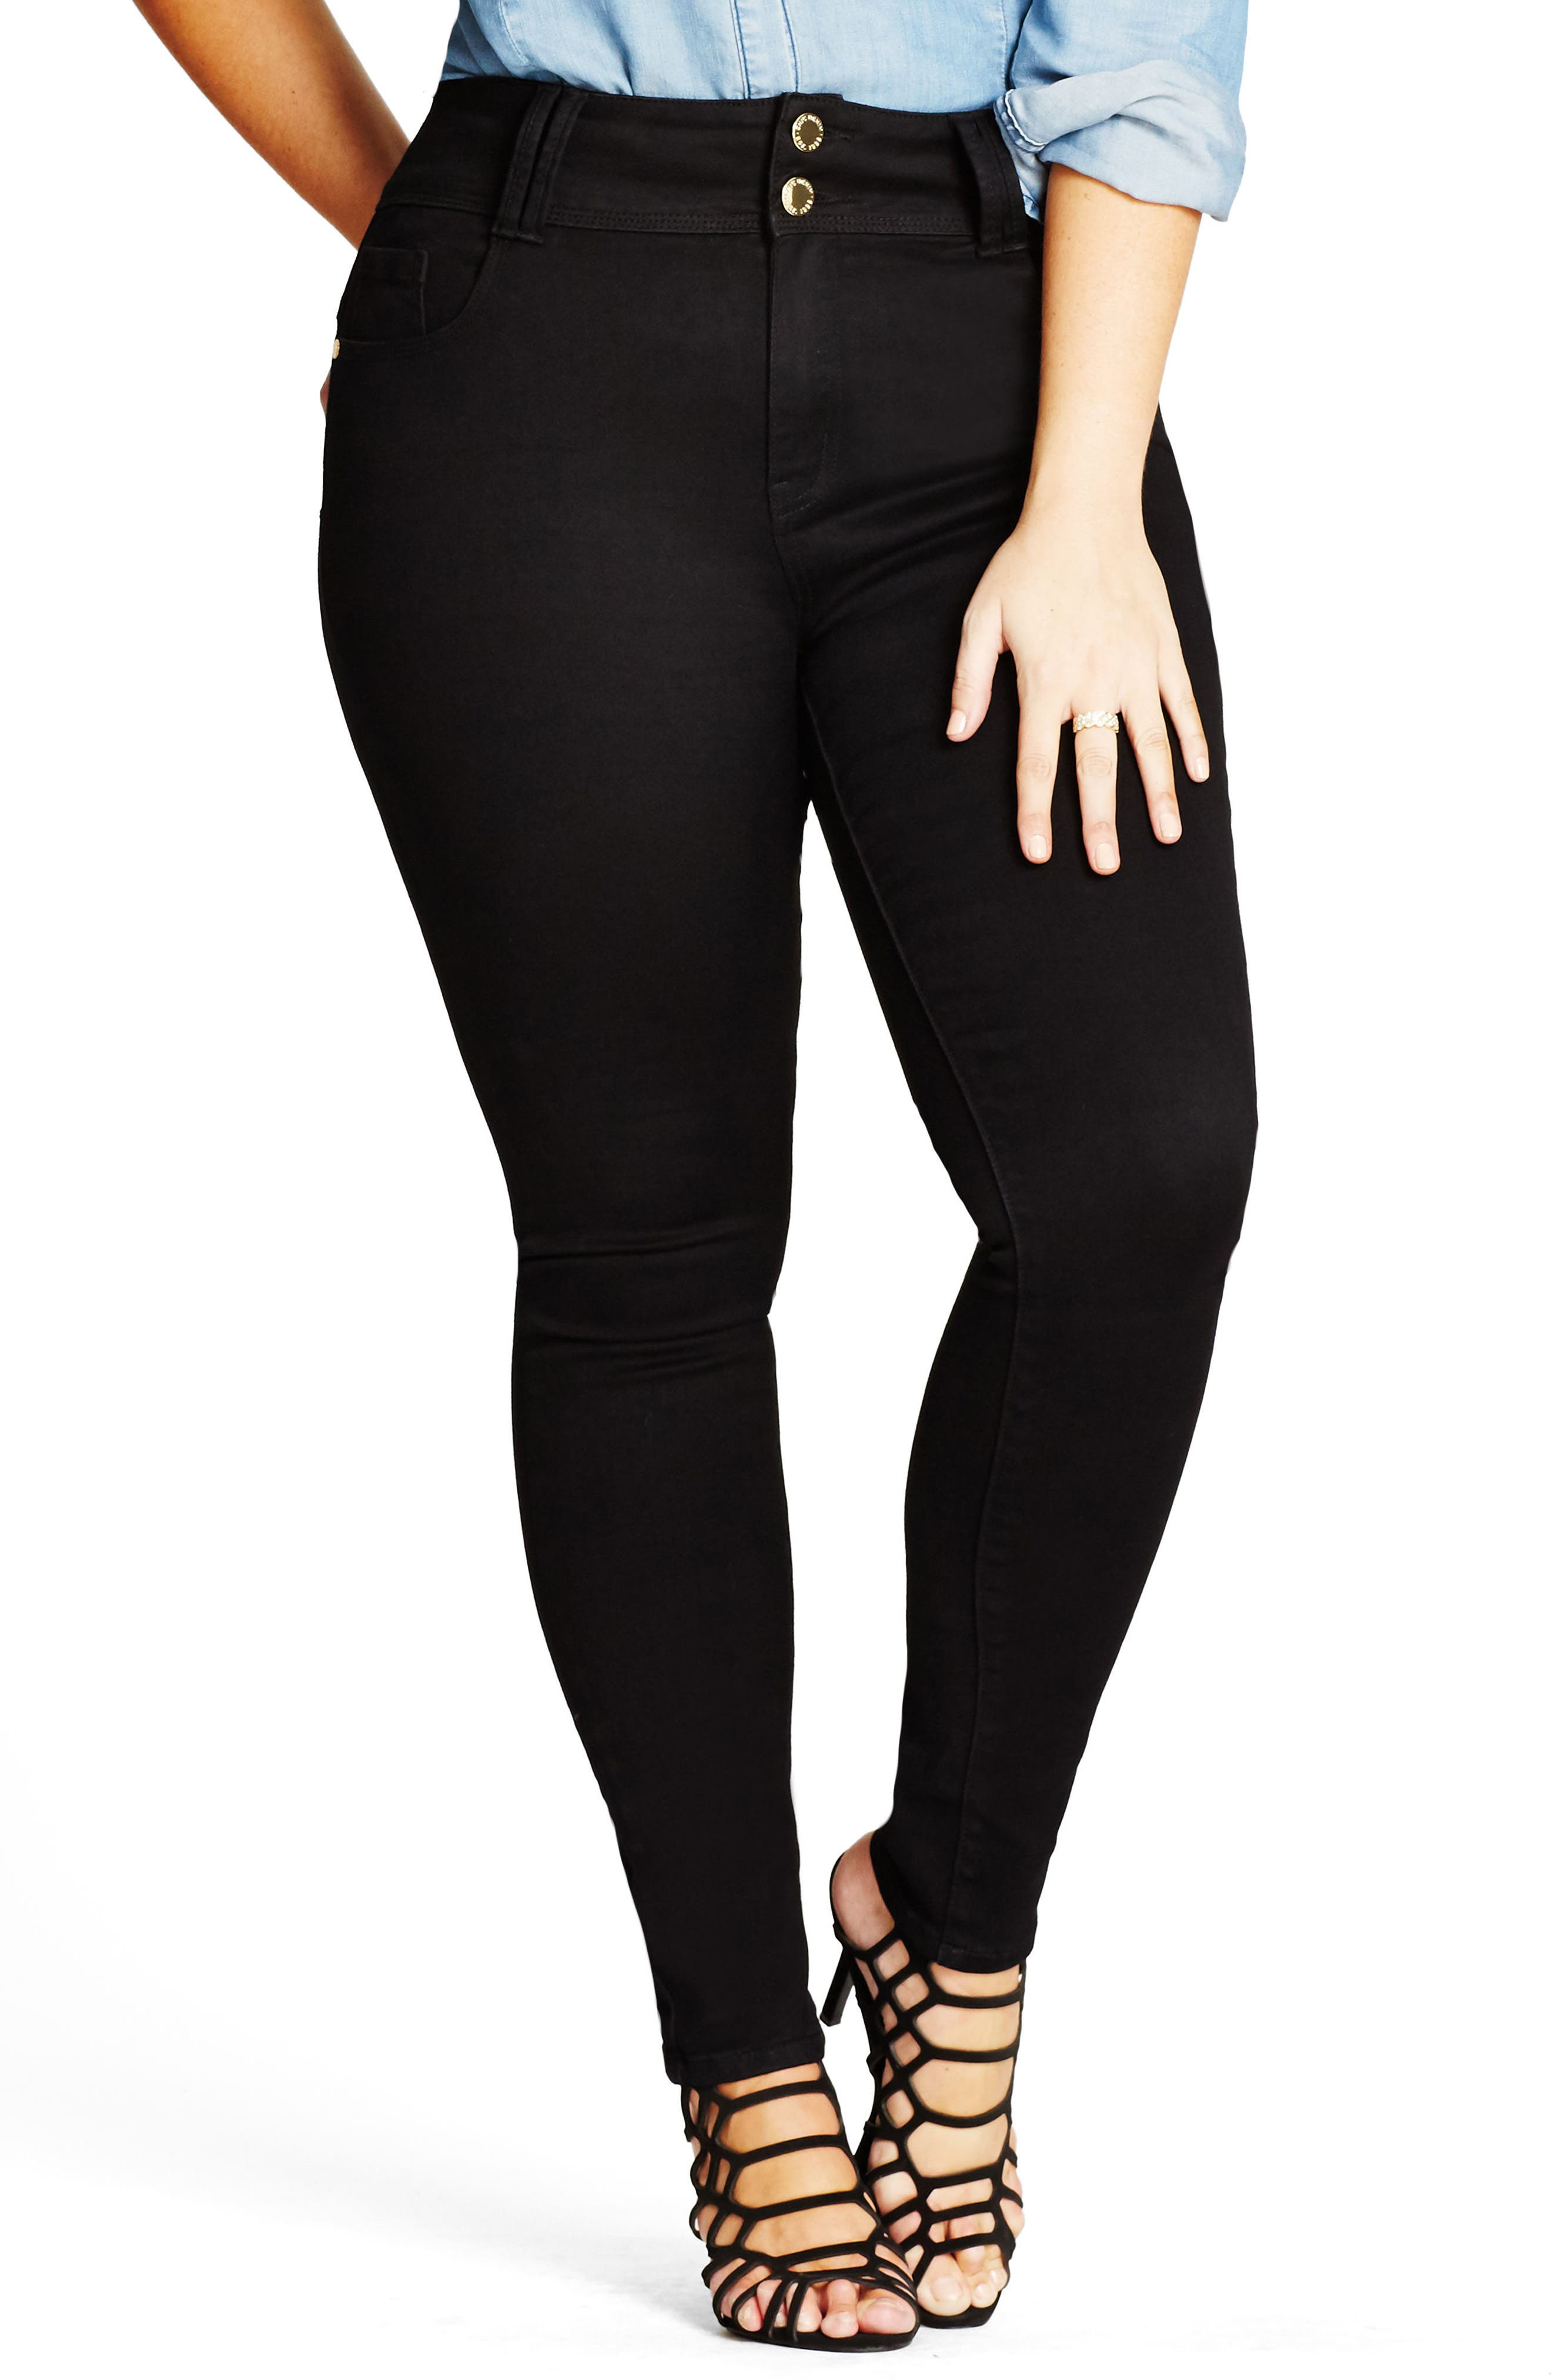 Alternate Image 1 Selected - City Chic Harley Stretch Skinny Jeans (Plus Size)